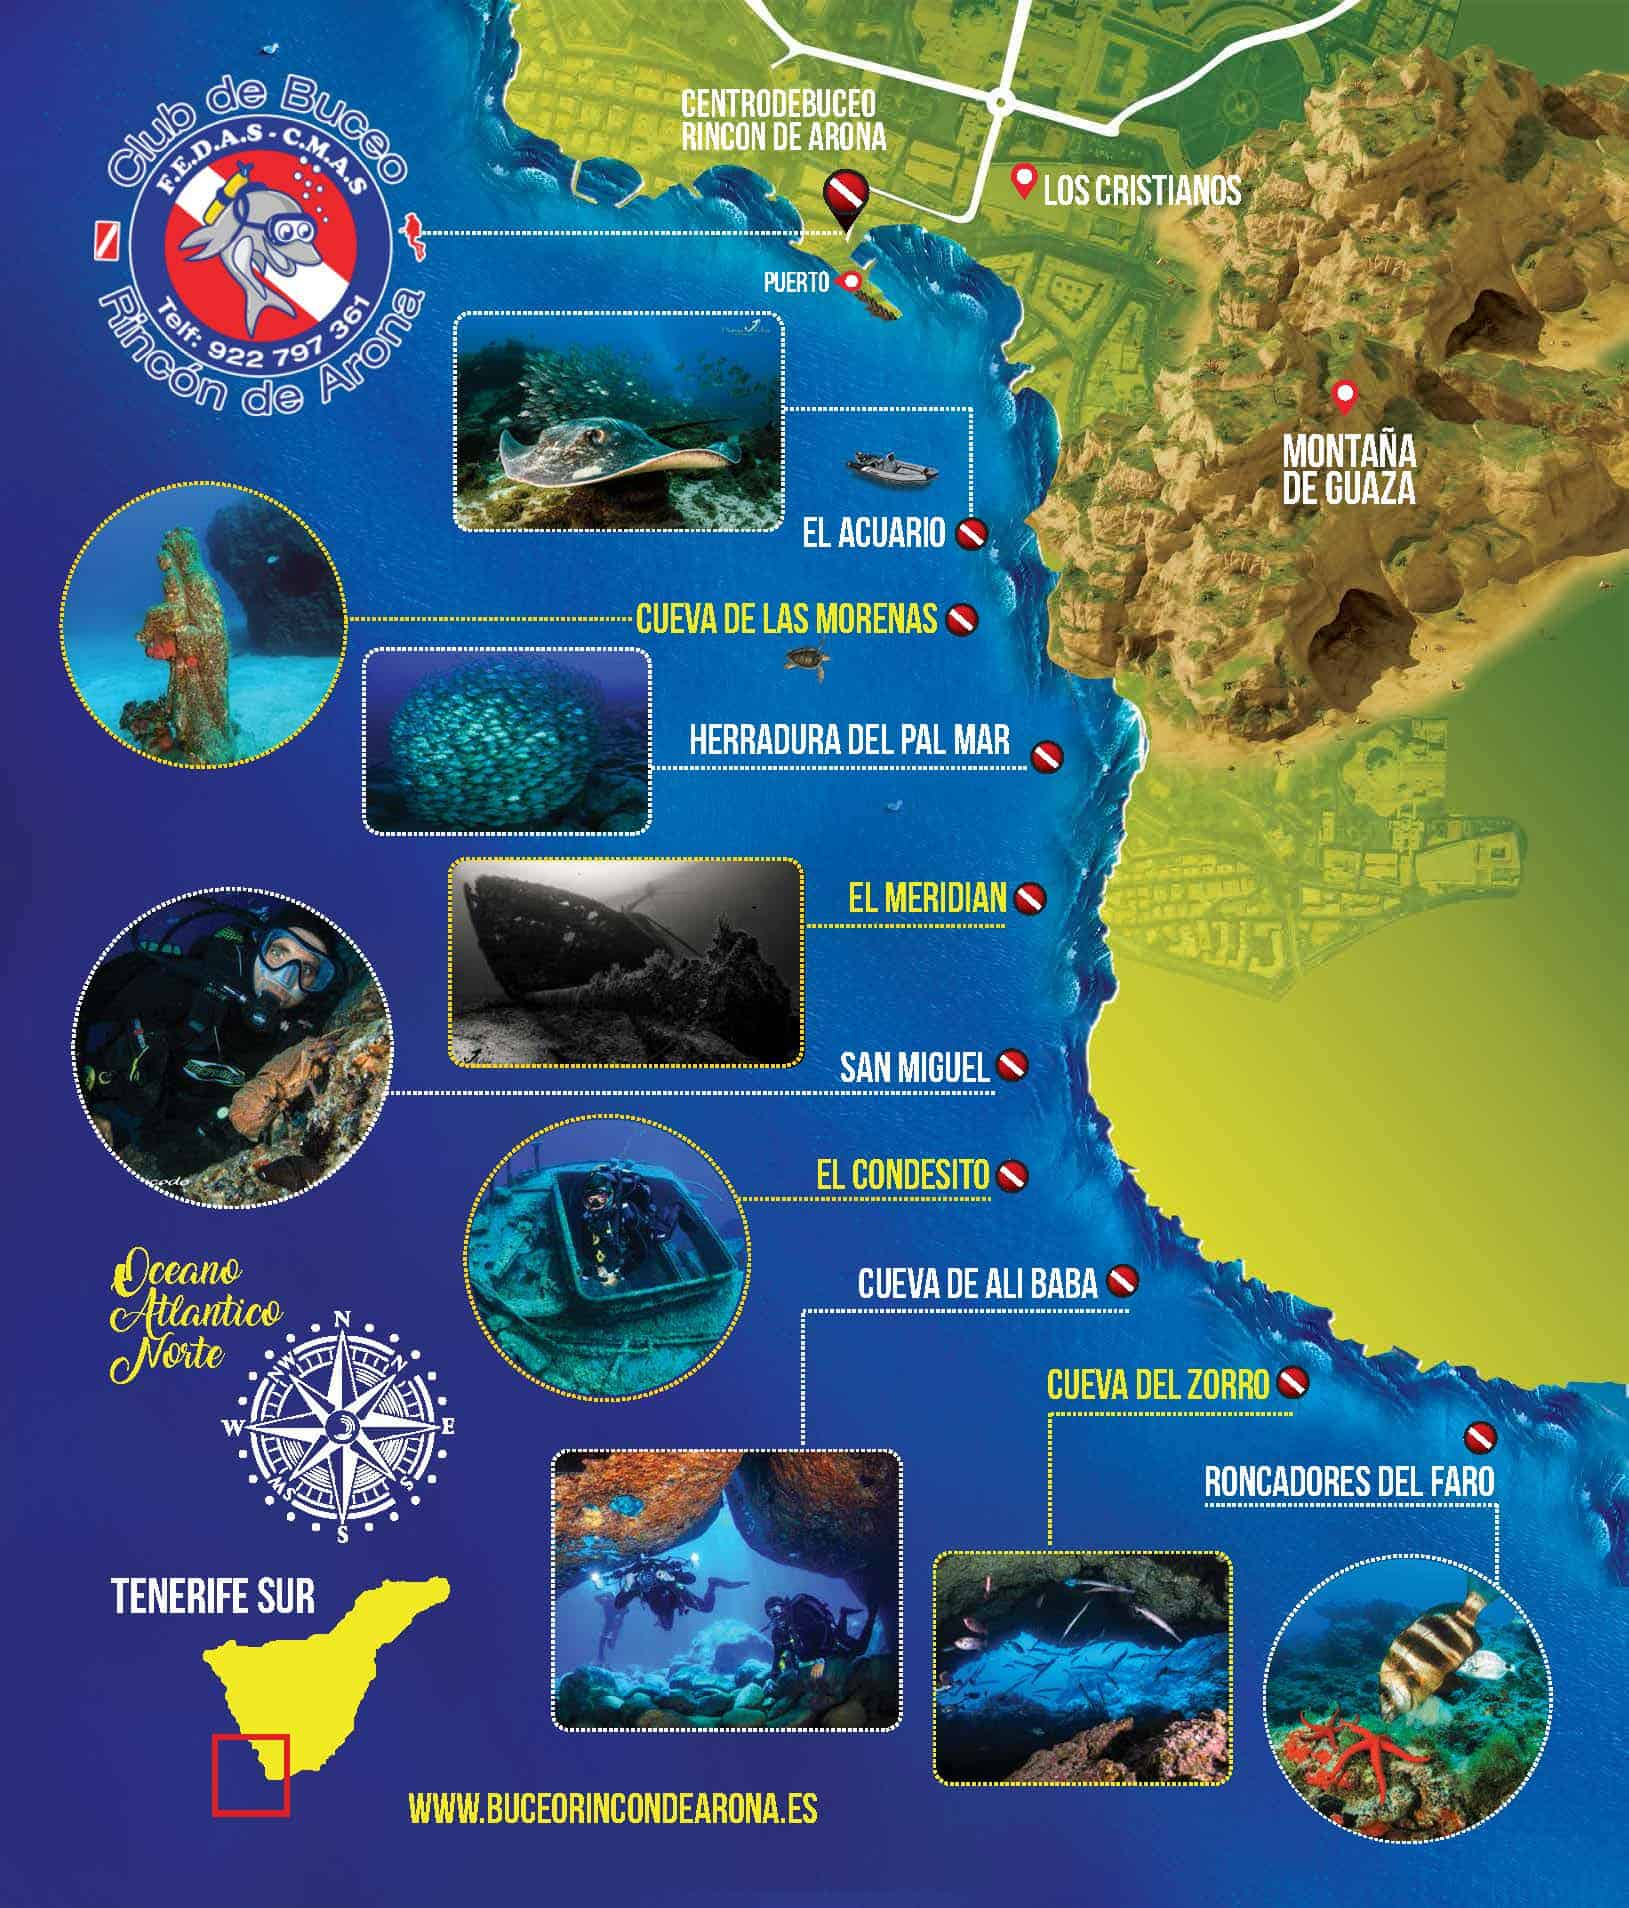 Dive with turtles in Tenerife. Diving club Rincon de Arona.